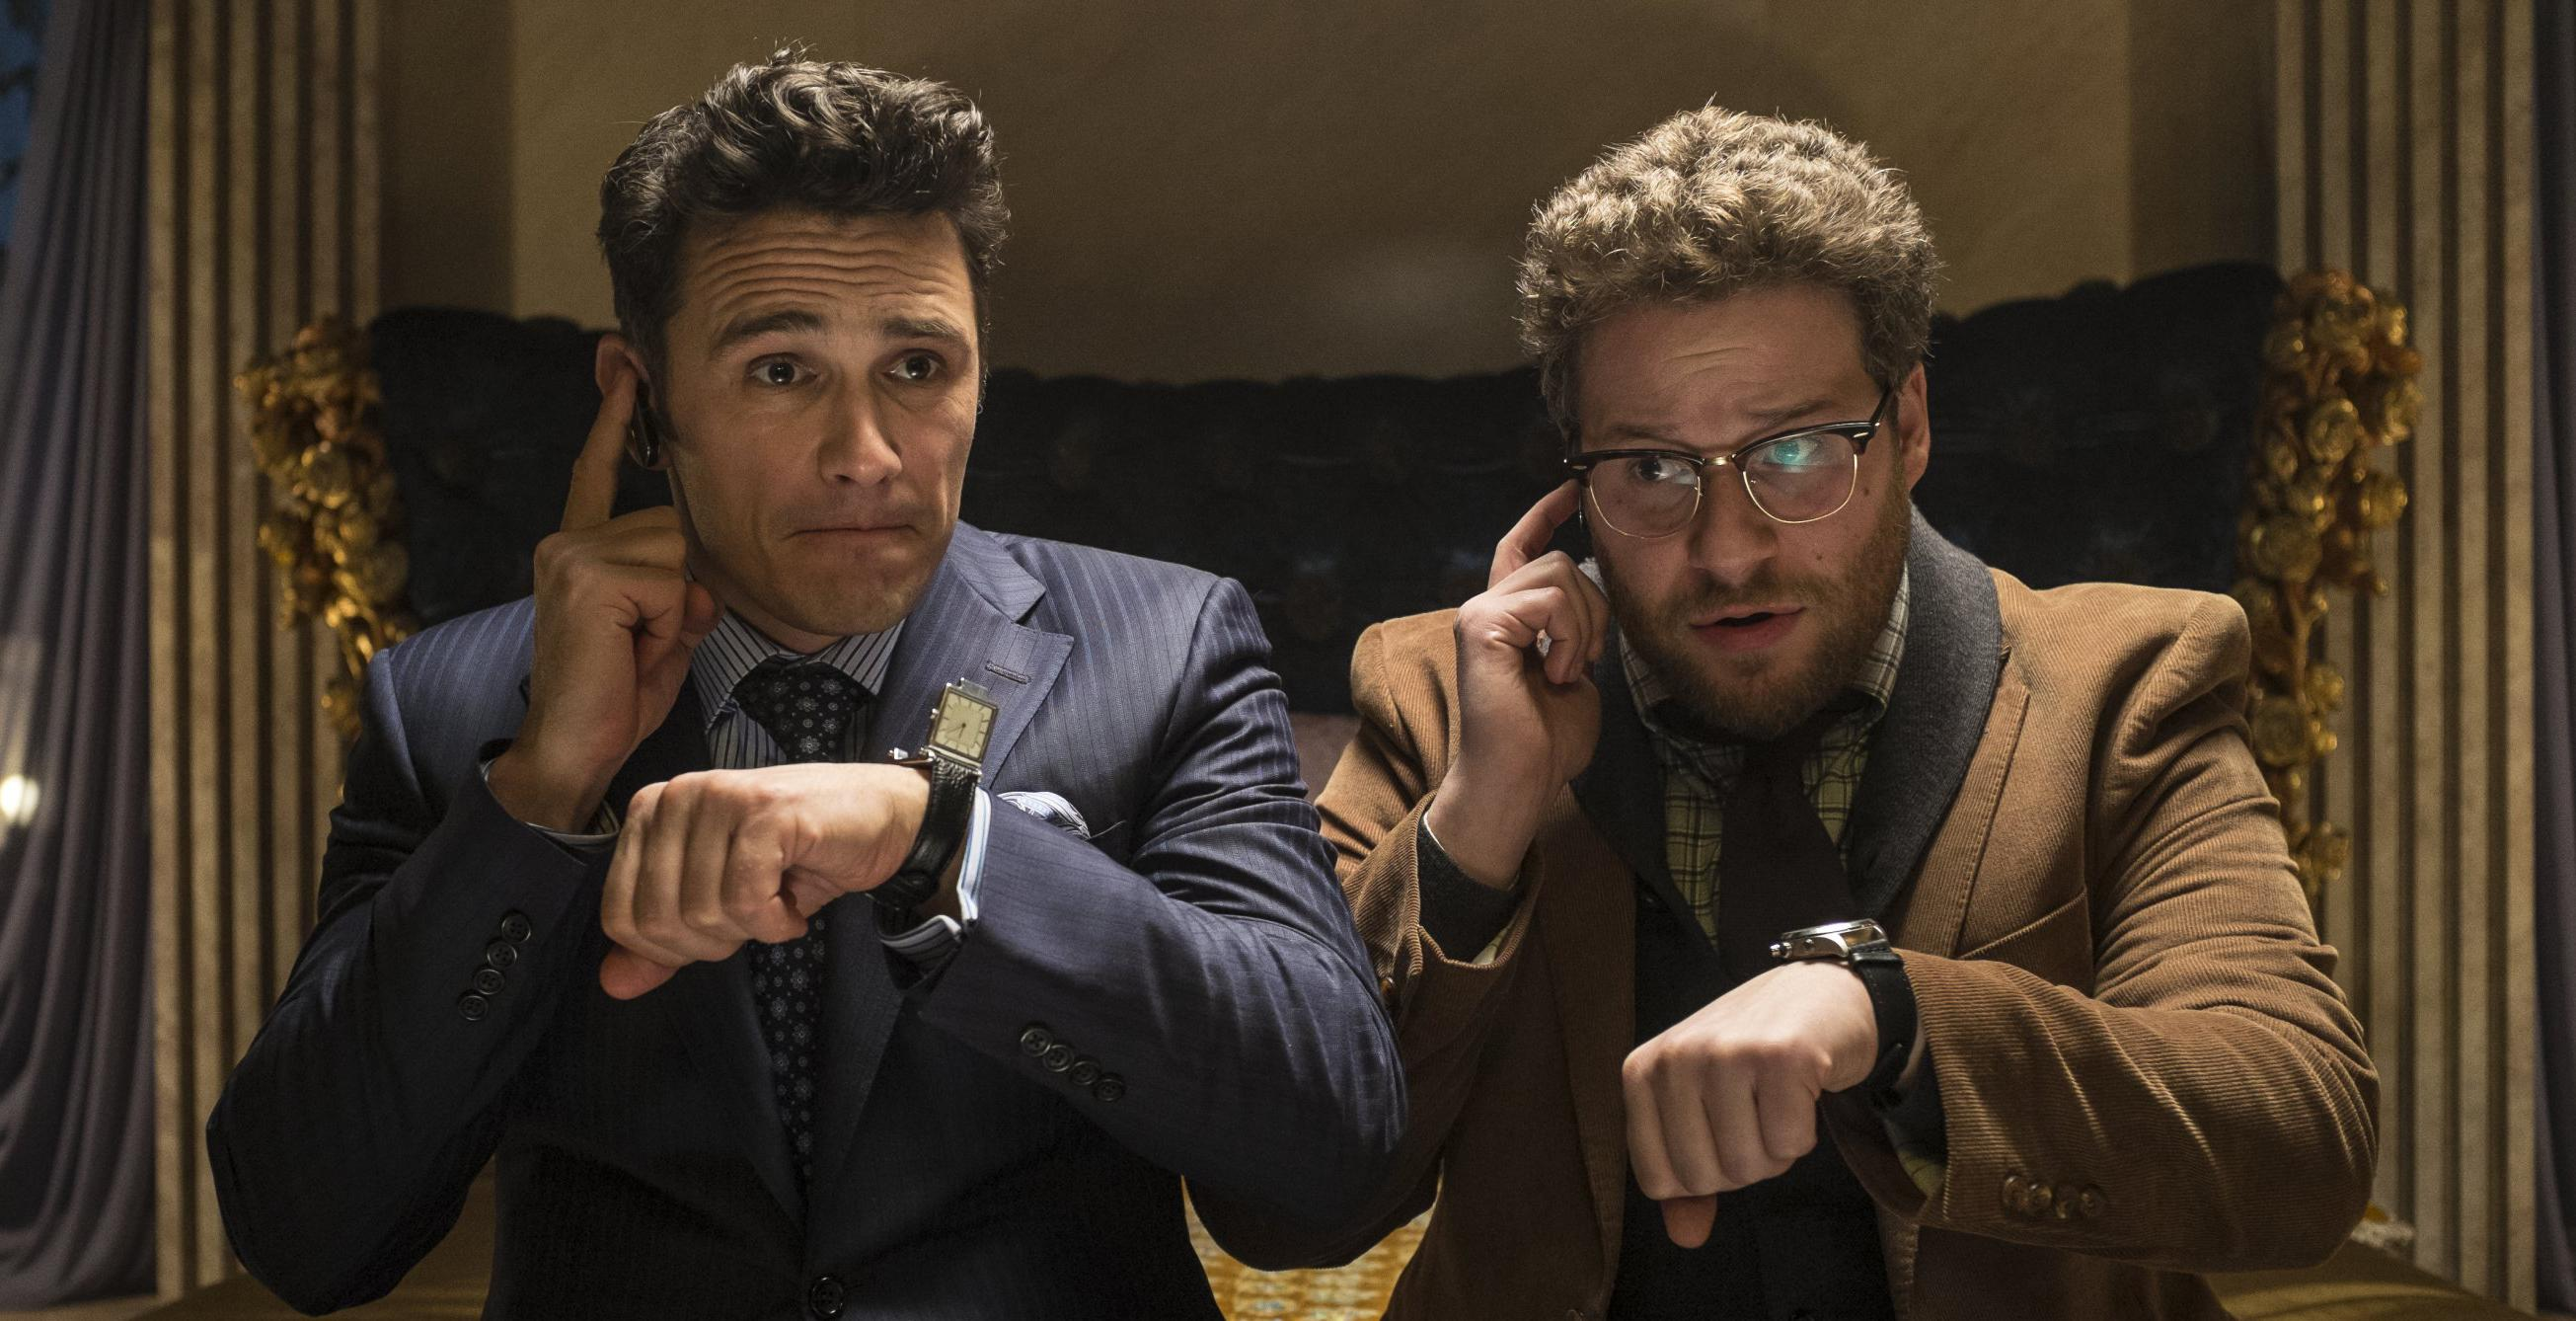 Image tirée du film The Interview (Photo : Columbia Pictures).